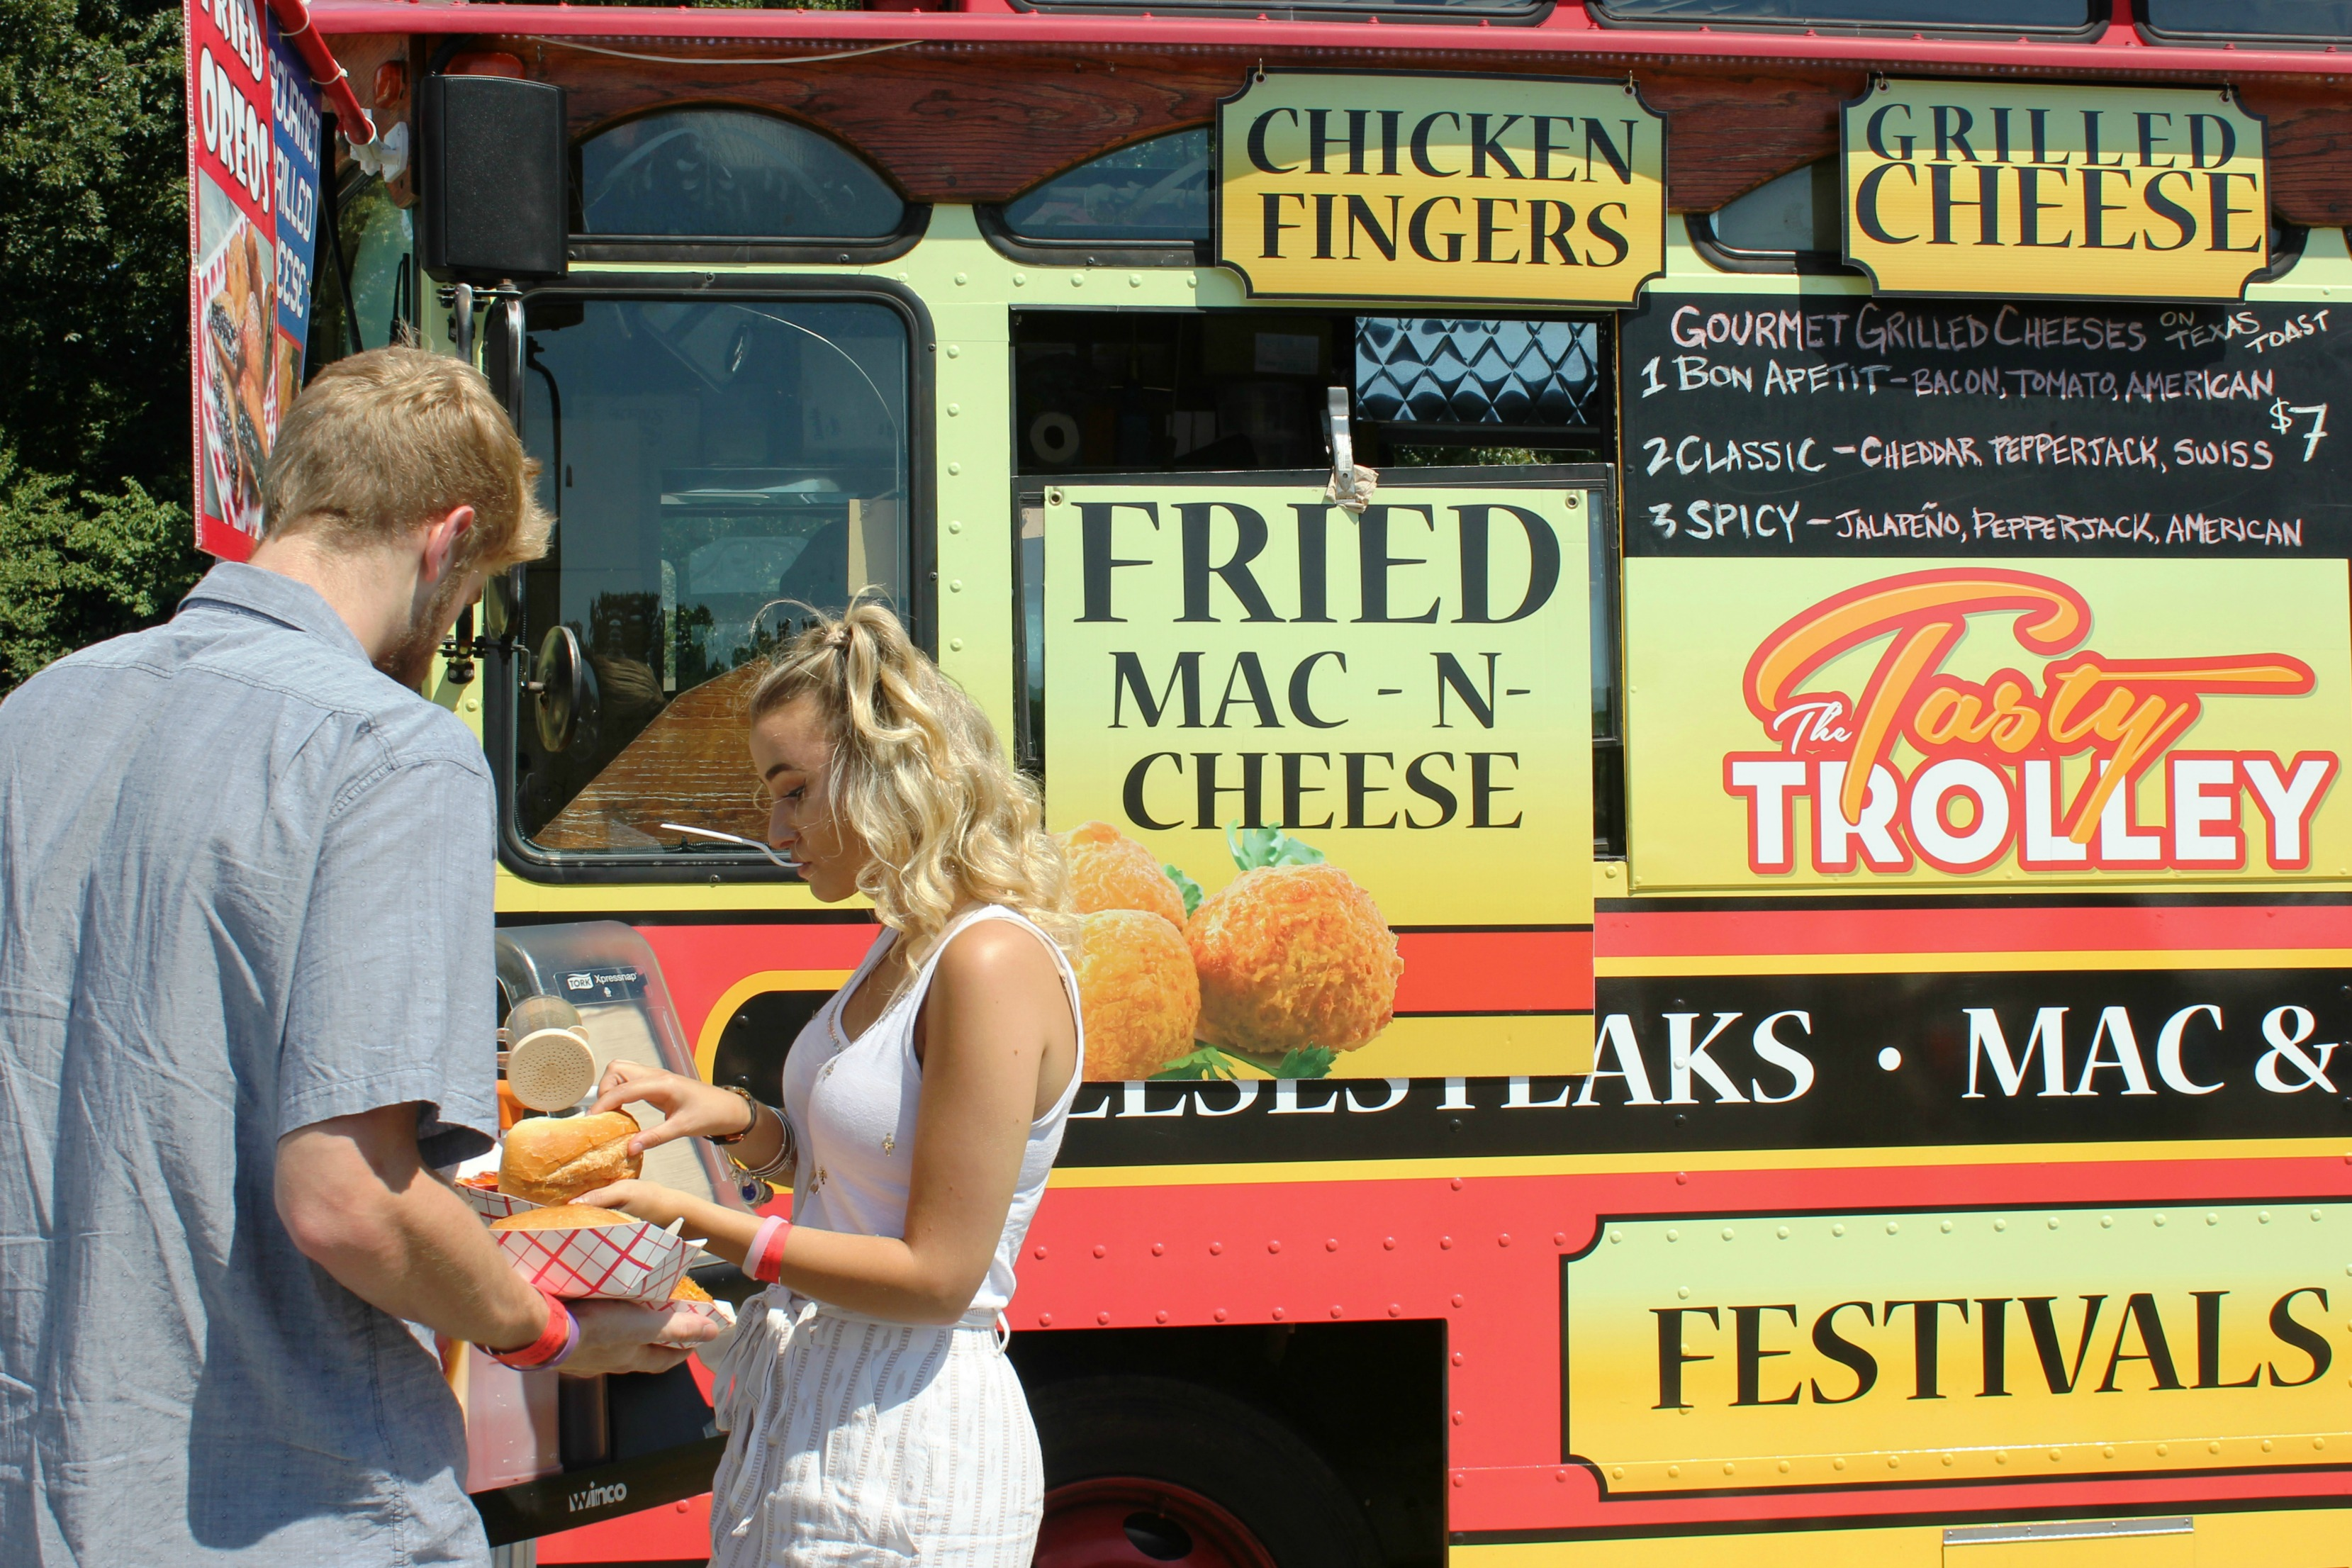 Food Truck Friday – On the Road with The Tasty Trolley